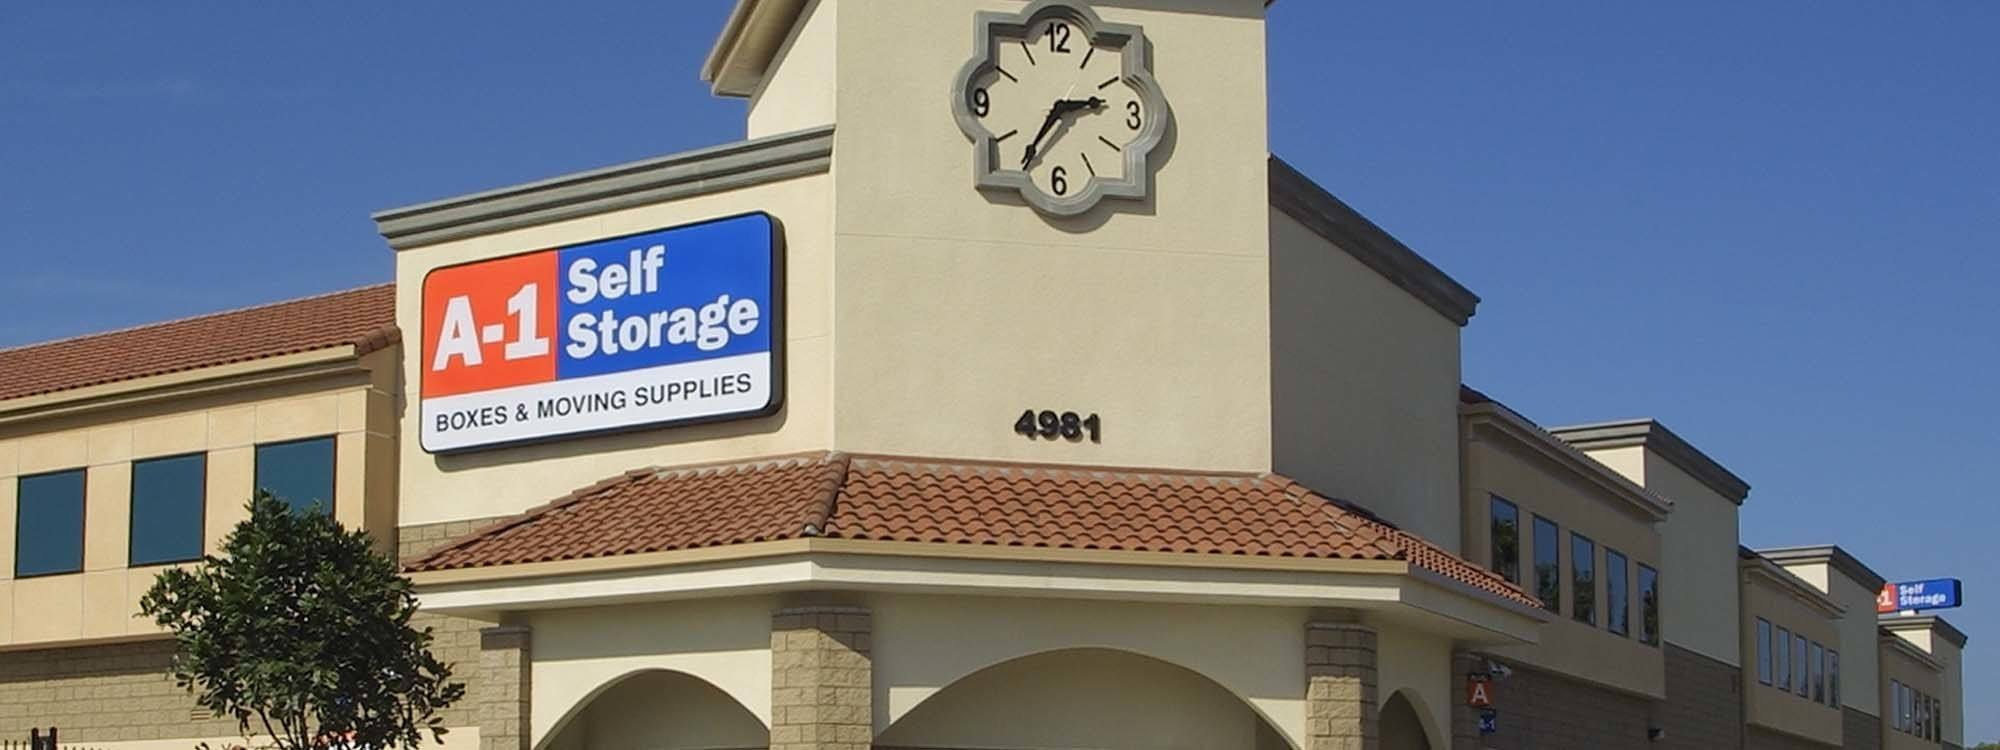 Self Storage Greater Village La Mesa California A 1 Self Storage